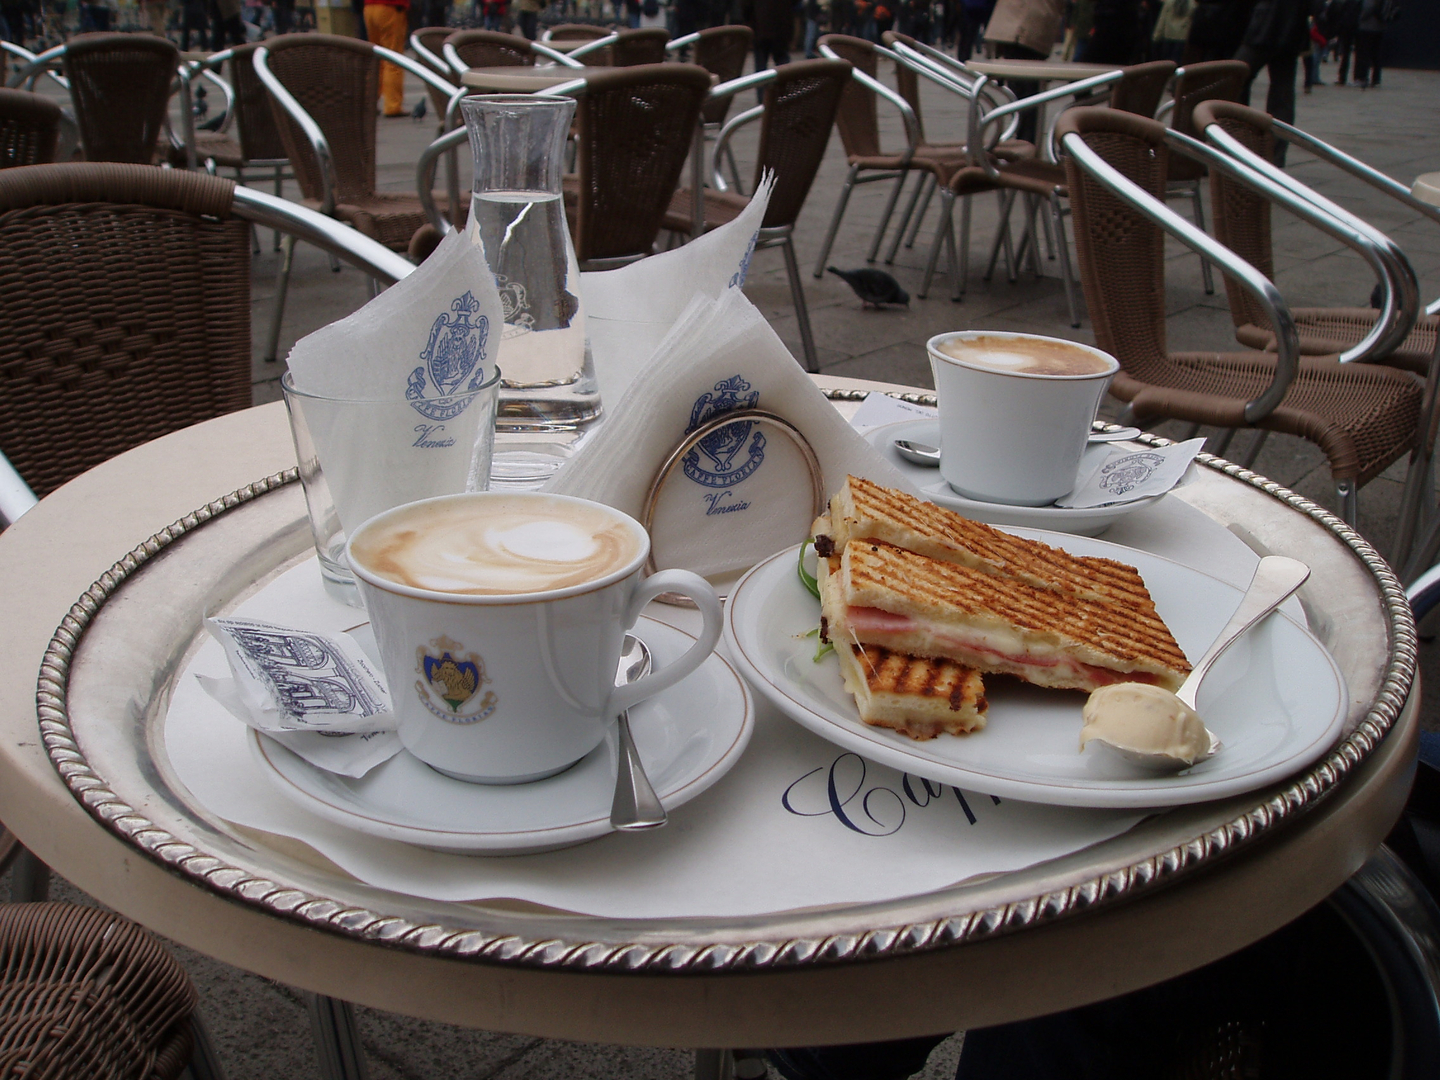 Ch 5 - Breakfast in Piazza San Marco Venice